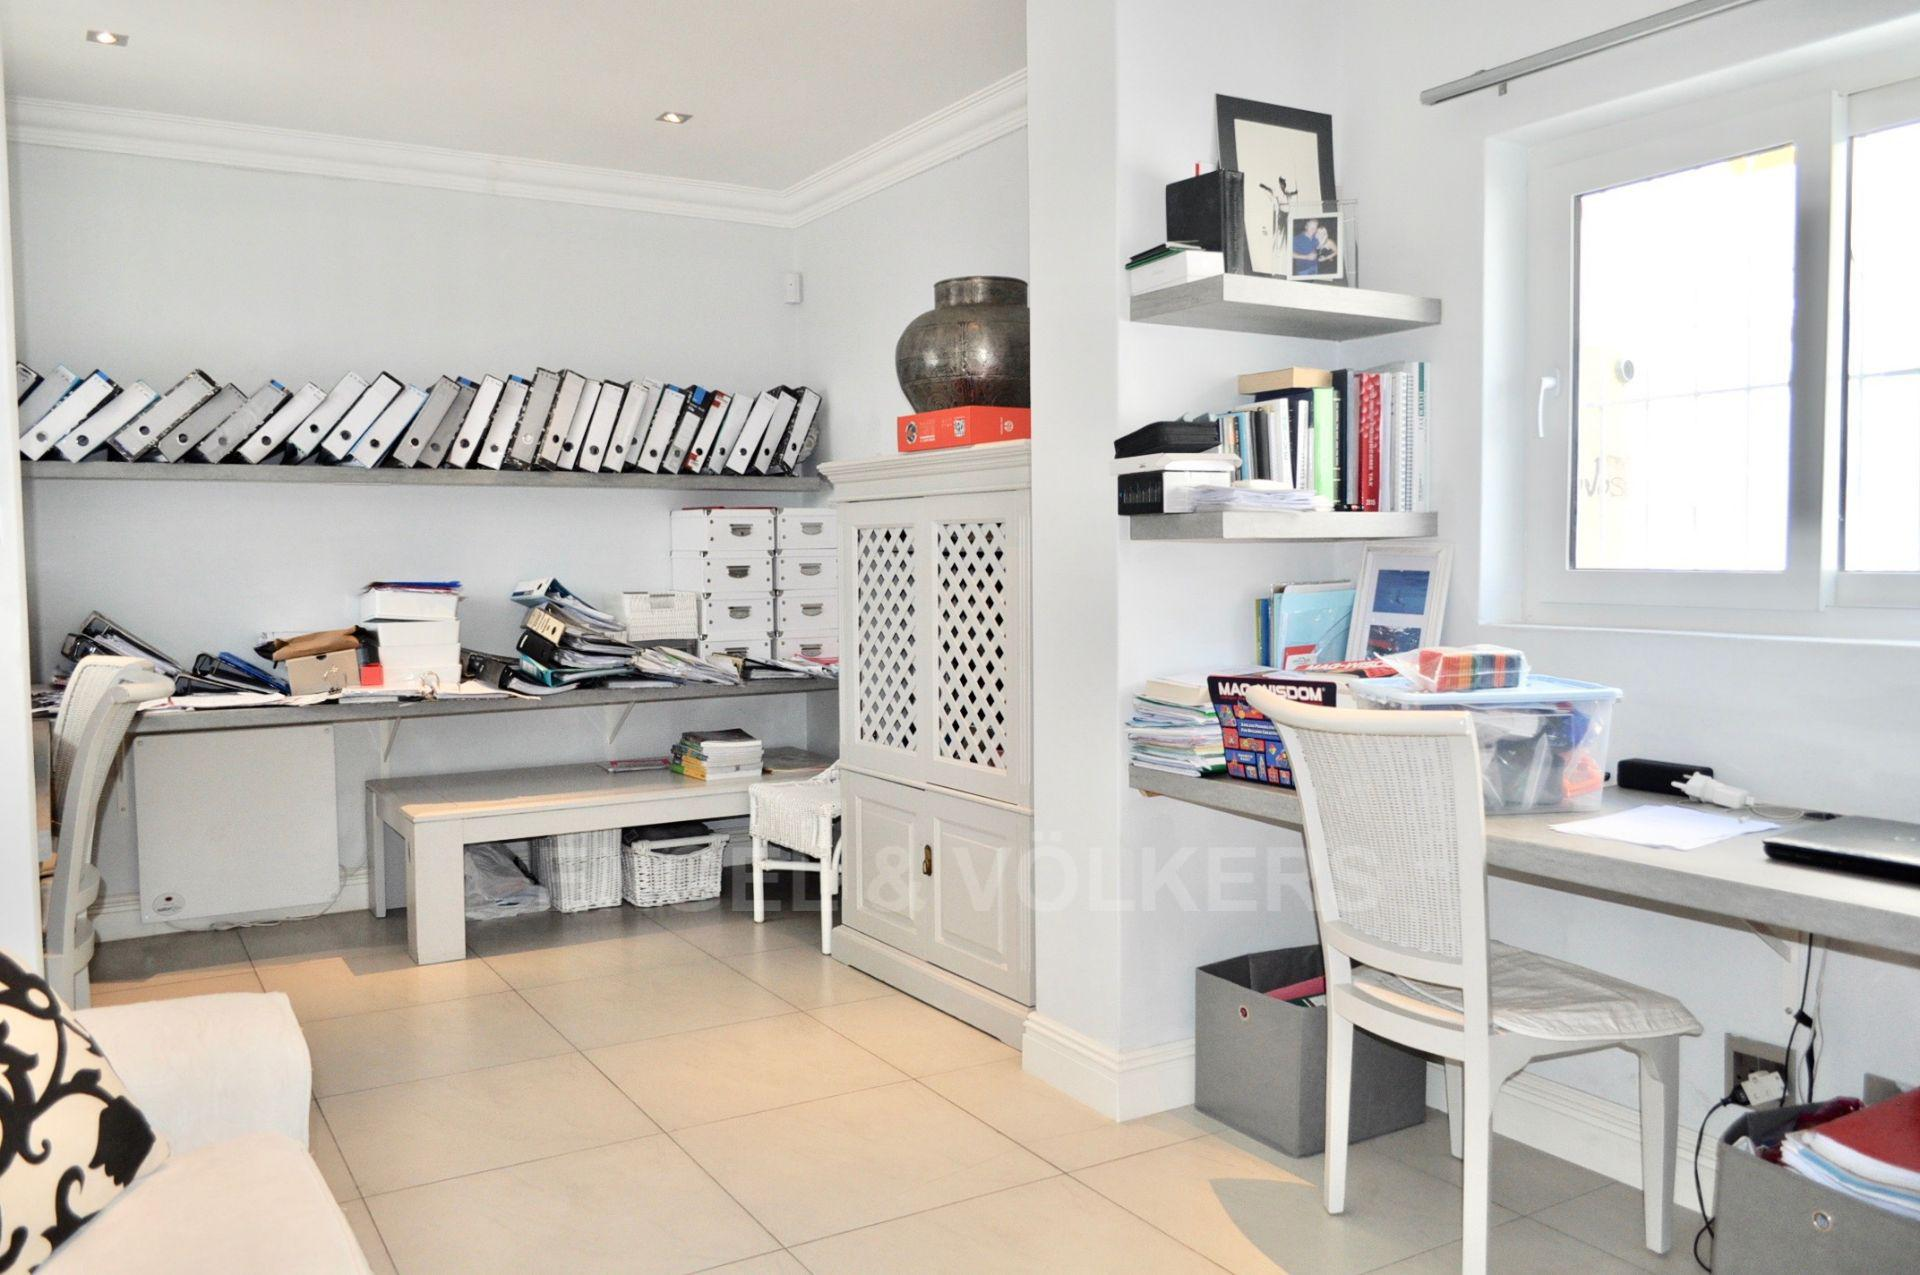 House in Upper Claremont - Office - View